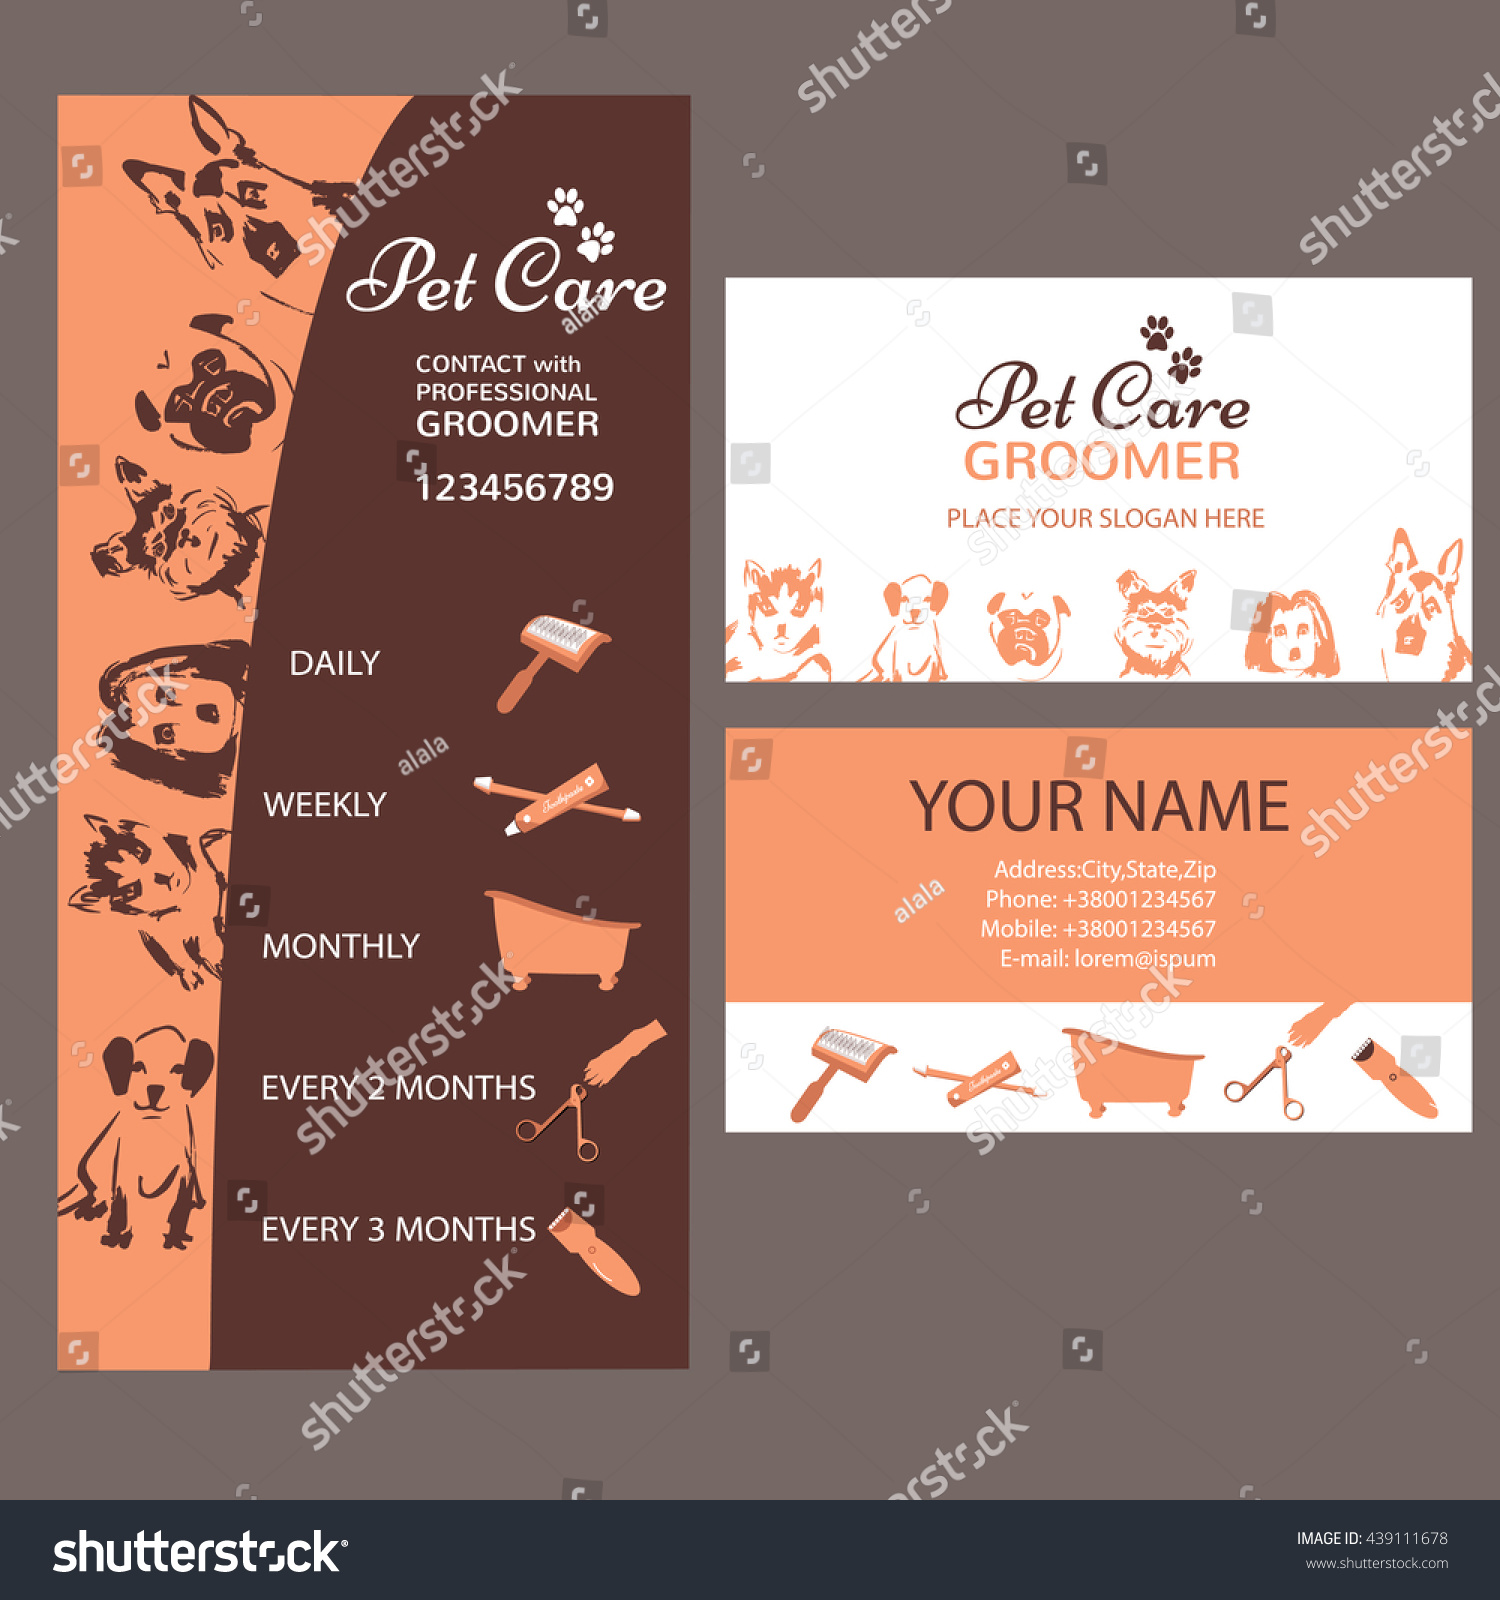 Business Card Grooming Service Pet Informative Stock Vector ...